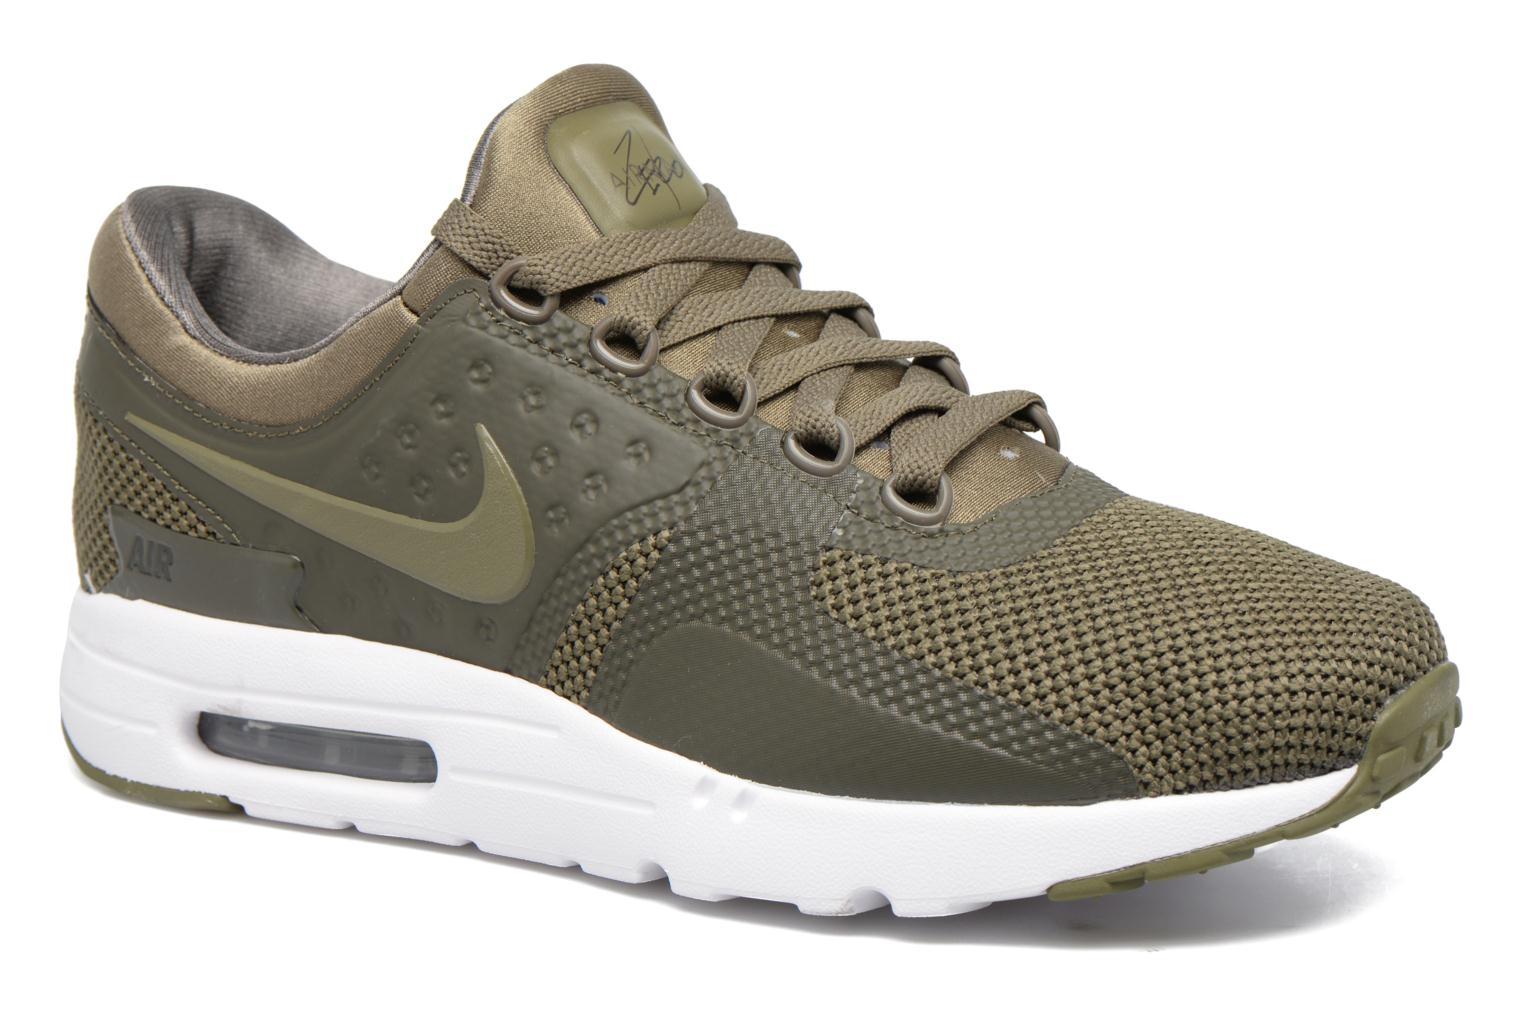 Nike Air Max Zero Essential Medium Olive/Medium Olive-Dark Stucco